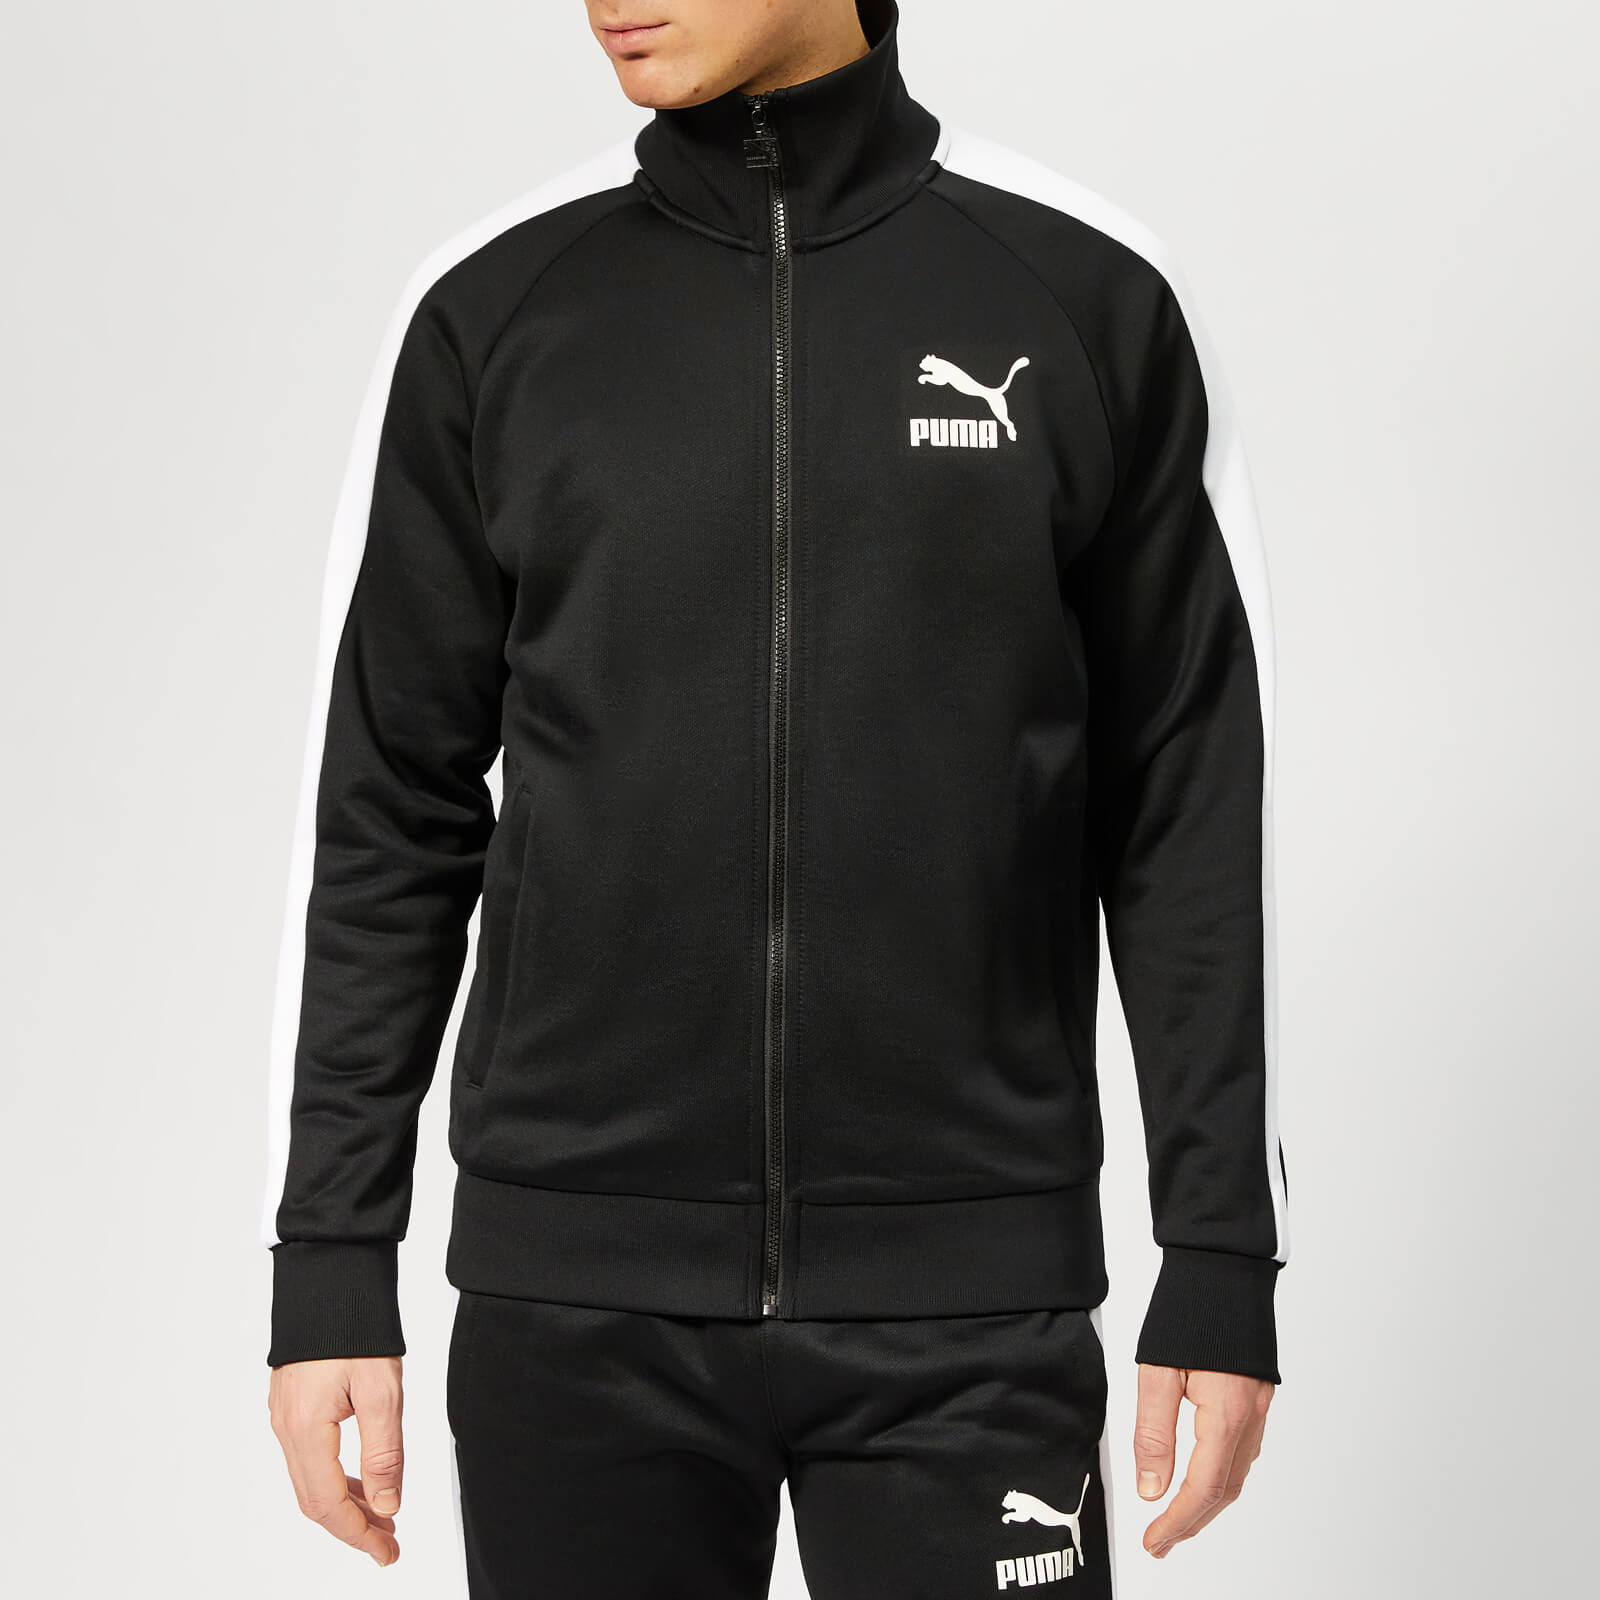 95f74db94e7a Puma Men s Iconic T7 Track Jacket - Puma Black Sports   Leisure ...